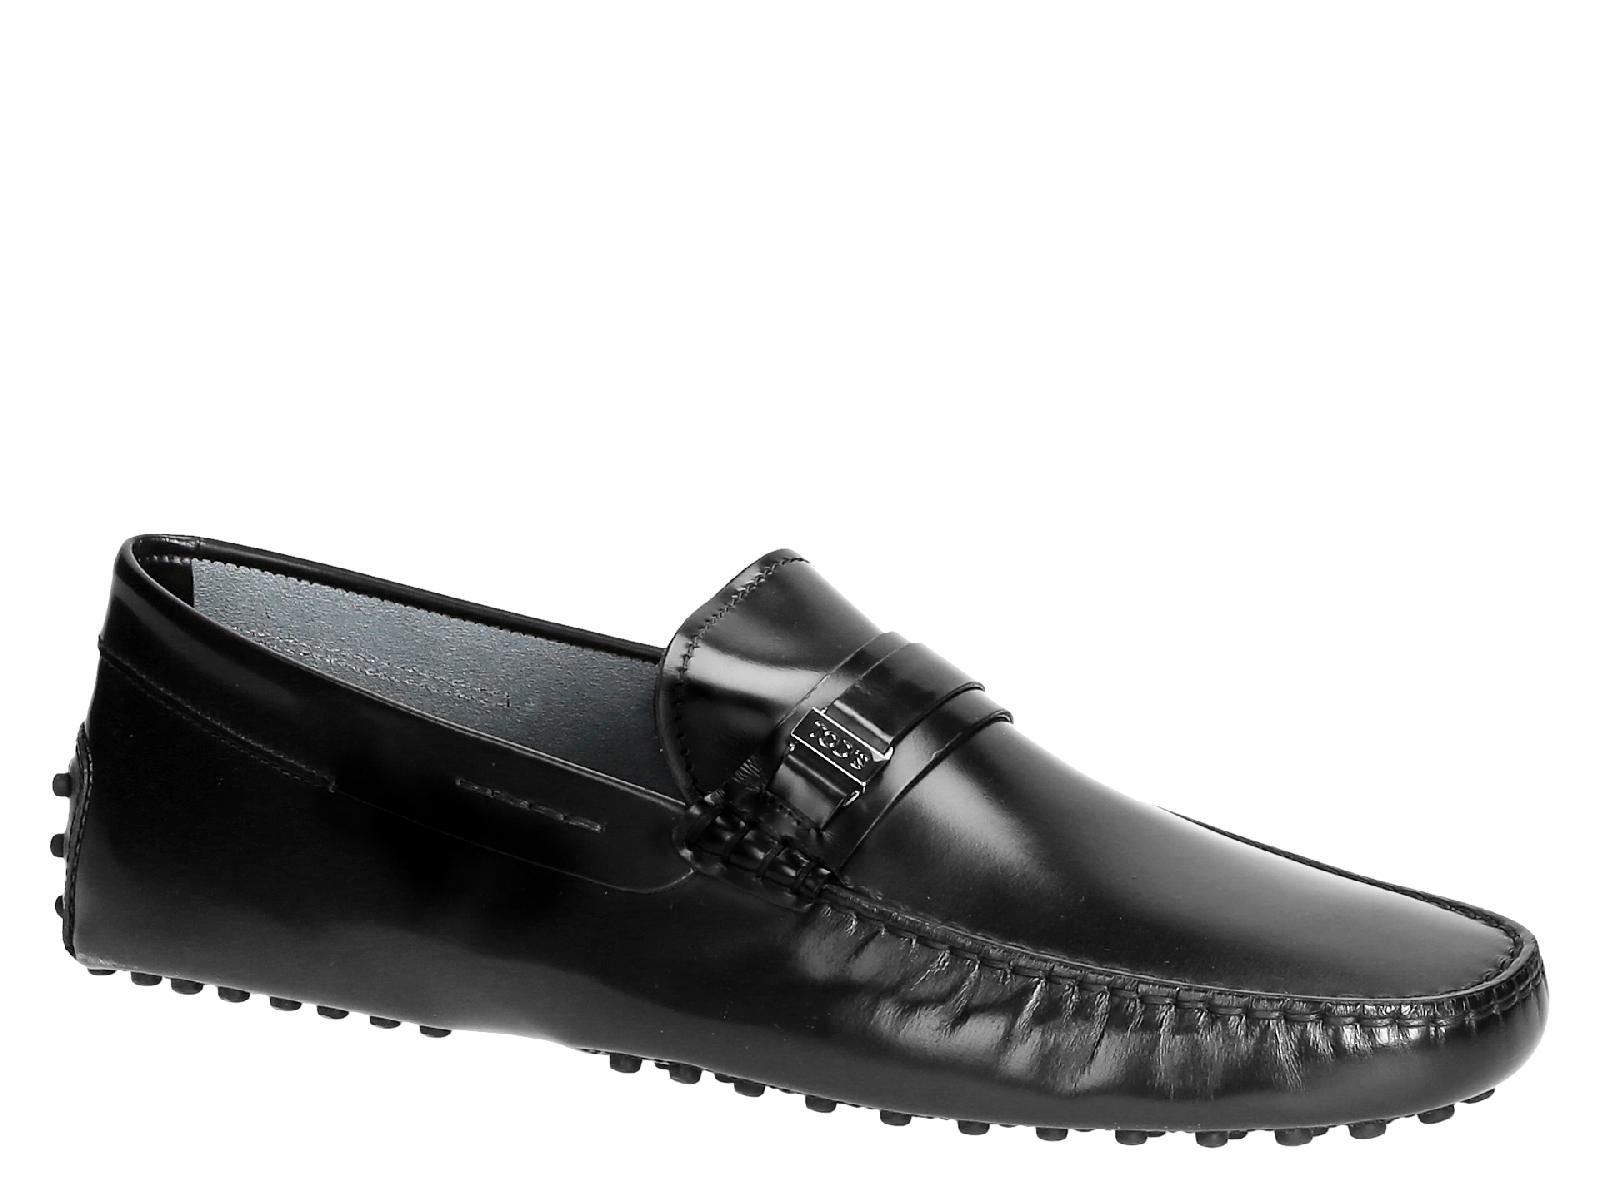 b2fdab24abc Tod s men s driving moccasins in black Shiny calf leather - Italian Boutique  €245